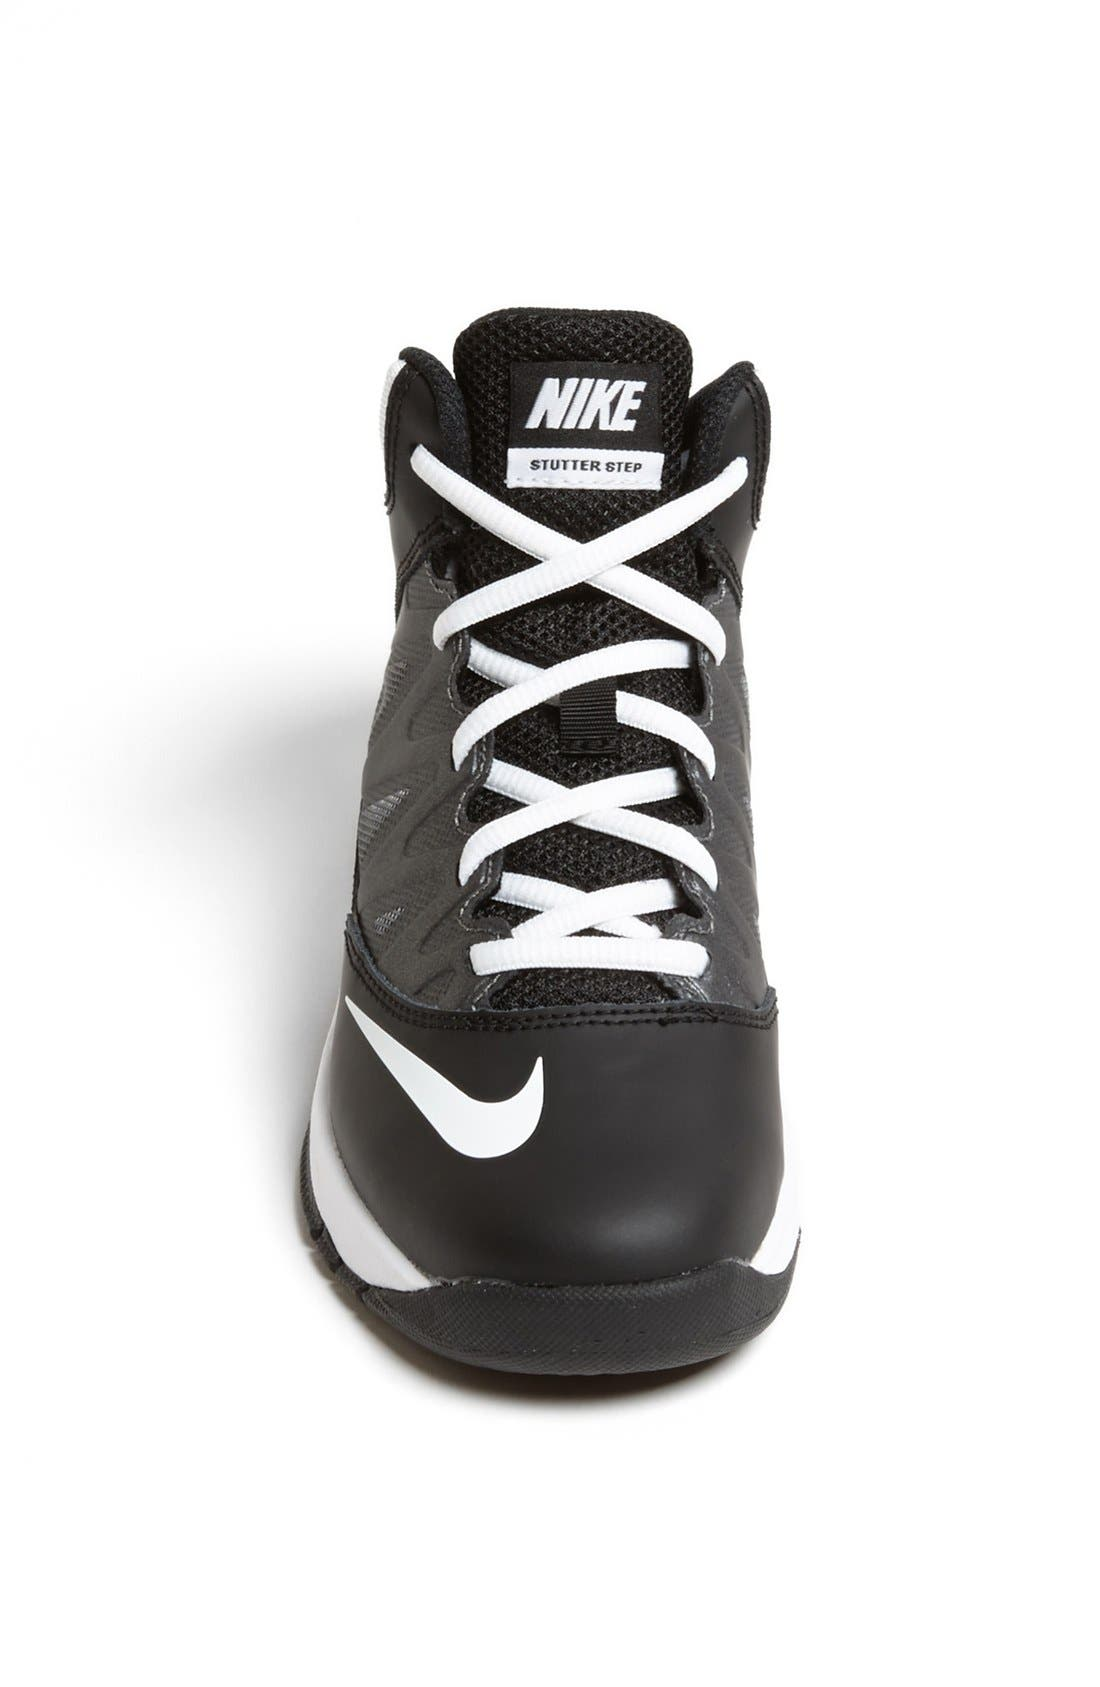 Alternate Image 3  - Nike 'Stutter Step' Basketball Shoe (Toddler & Little Kid)